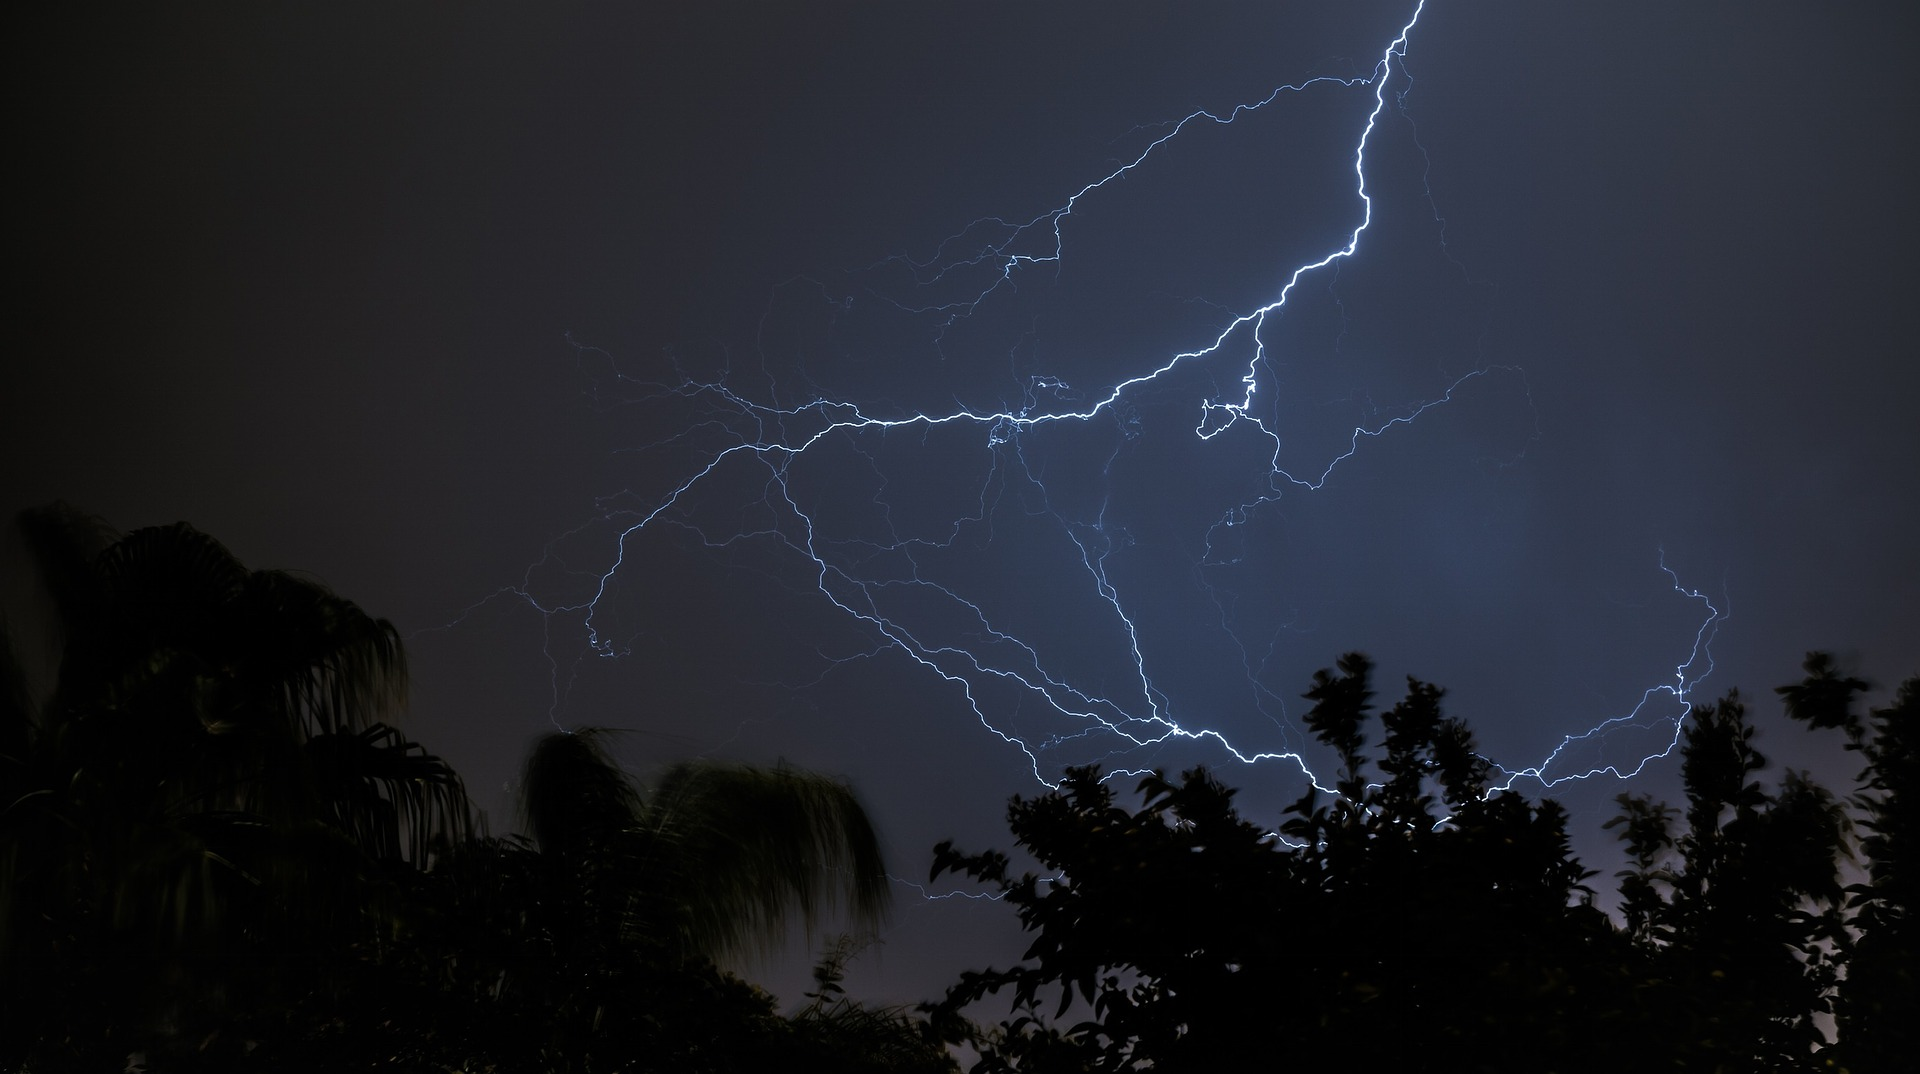 storm insurance coverage - lightning & more